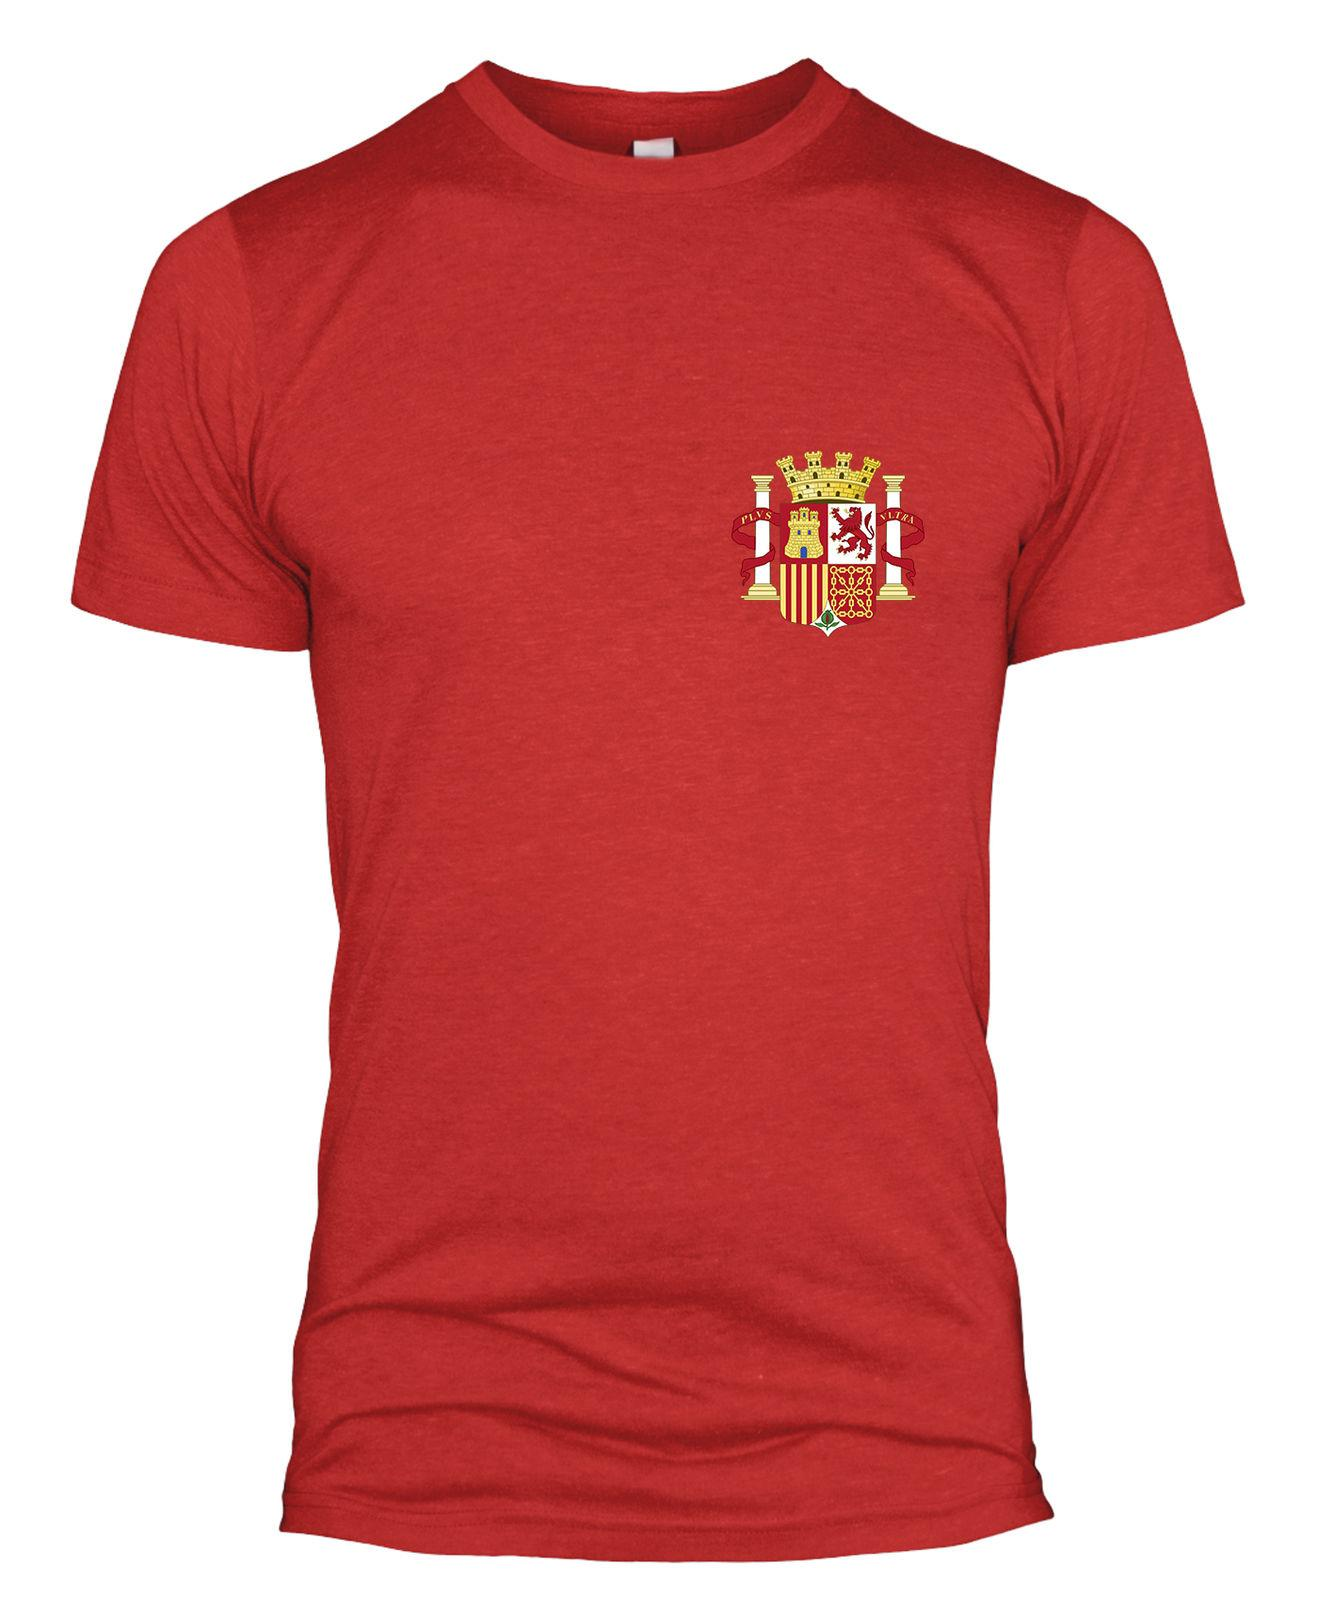 b6f554576e5 Womens Retro Football Shirts – EDGE Engineering and Consulting Limited